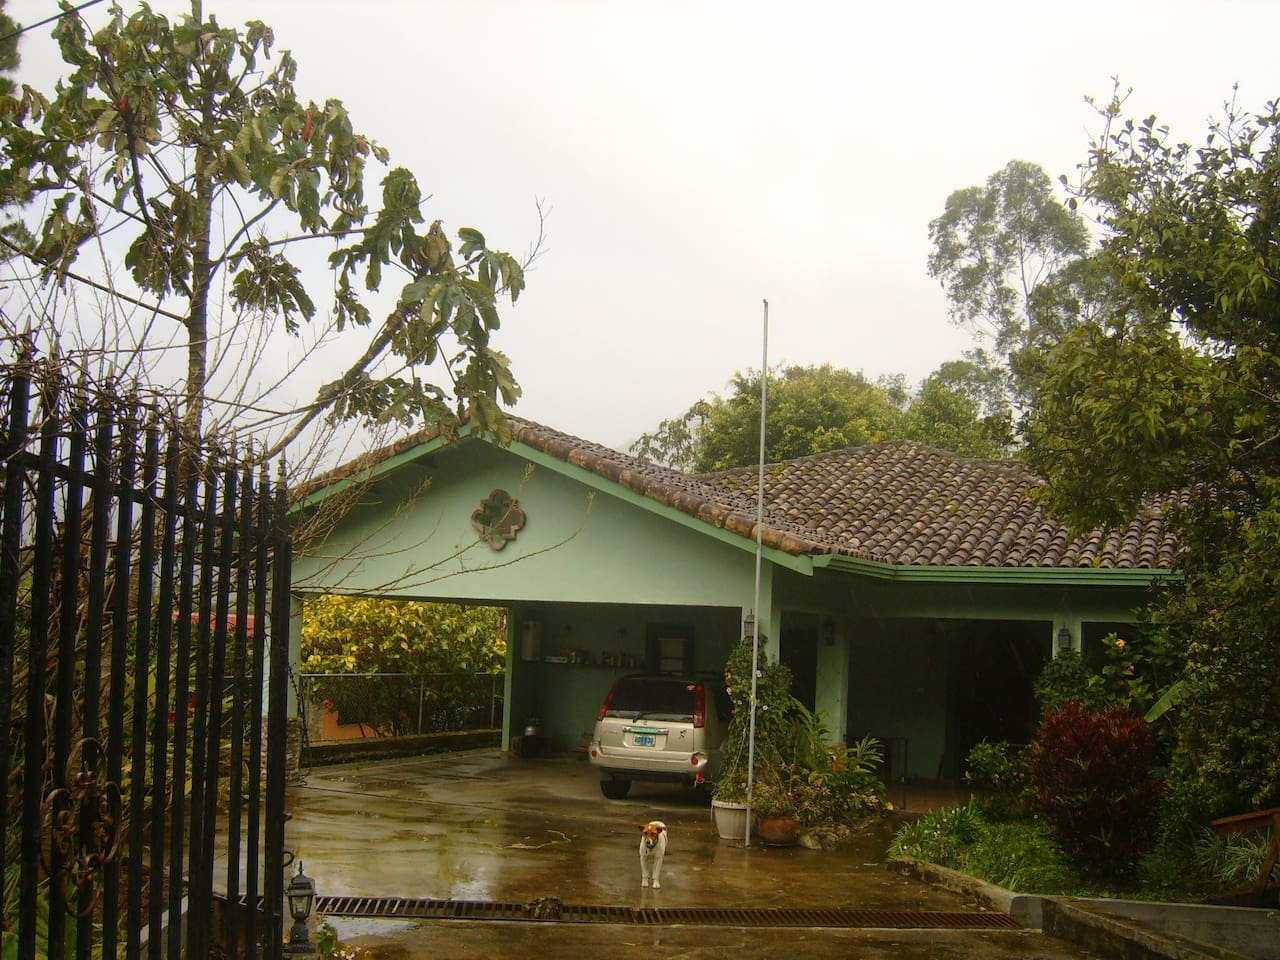 This is the exterior of my house in the Jaramillo Neighborhood of Boquete